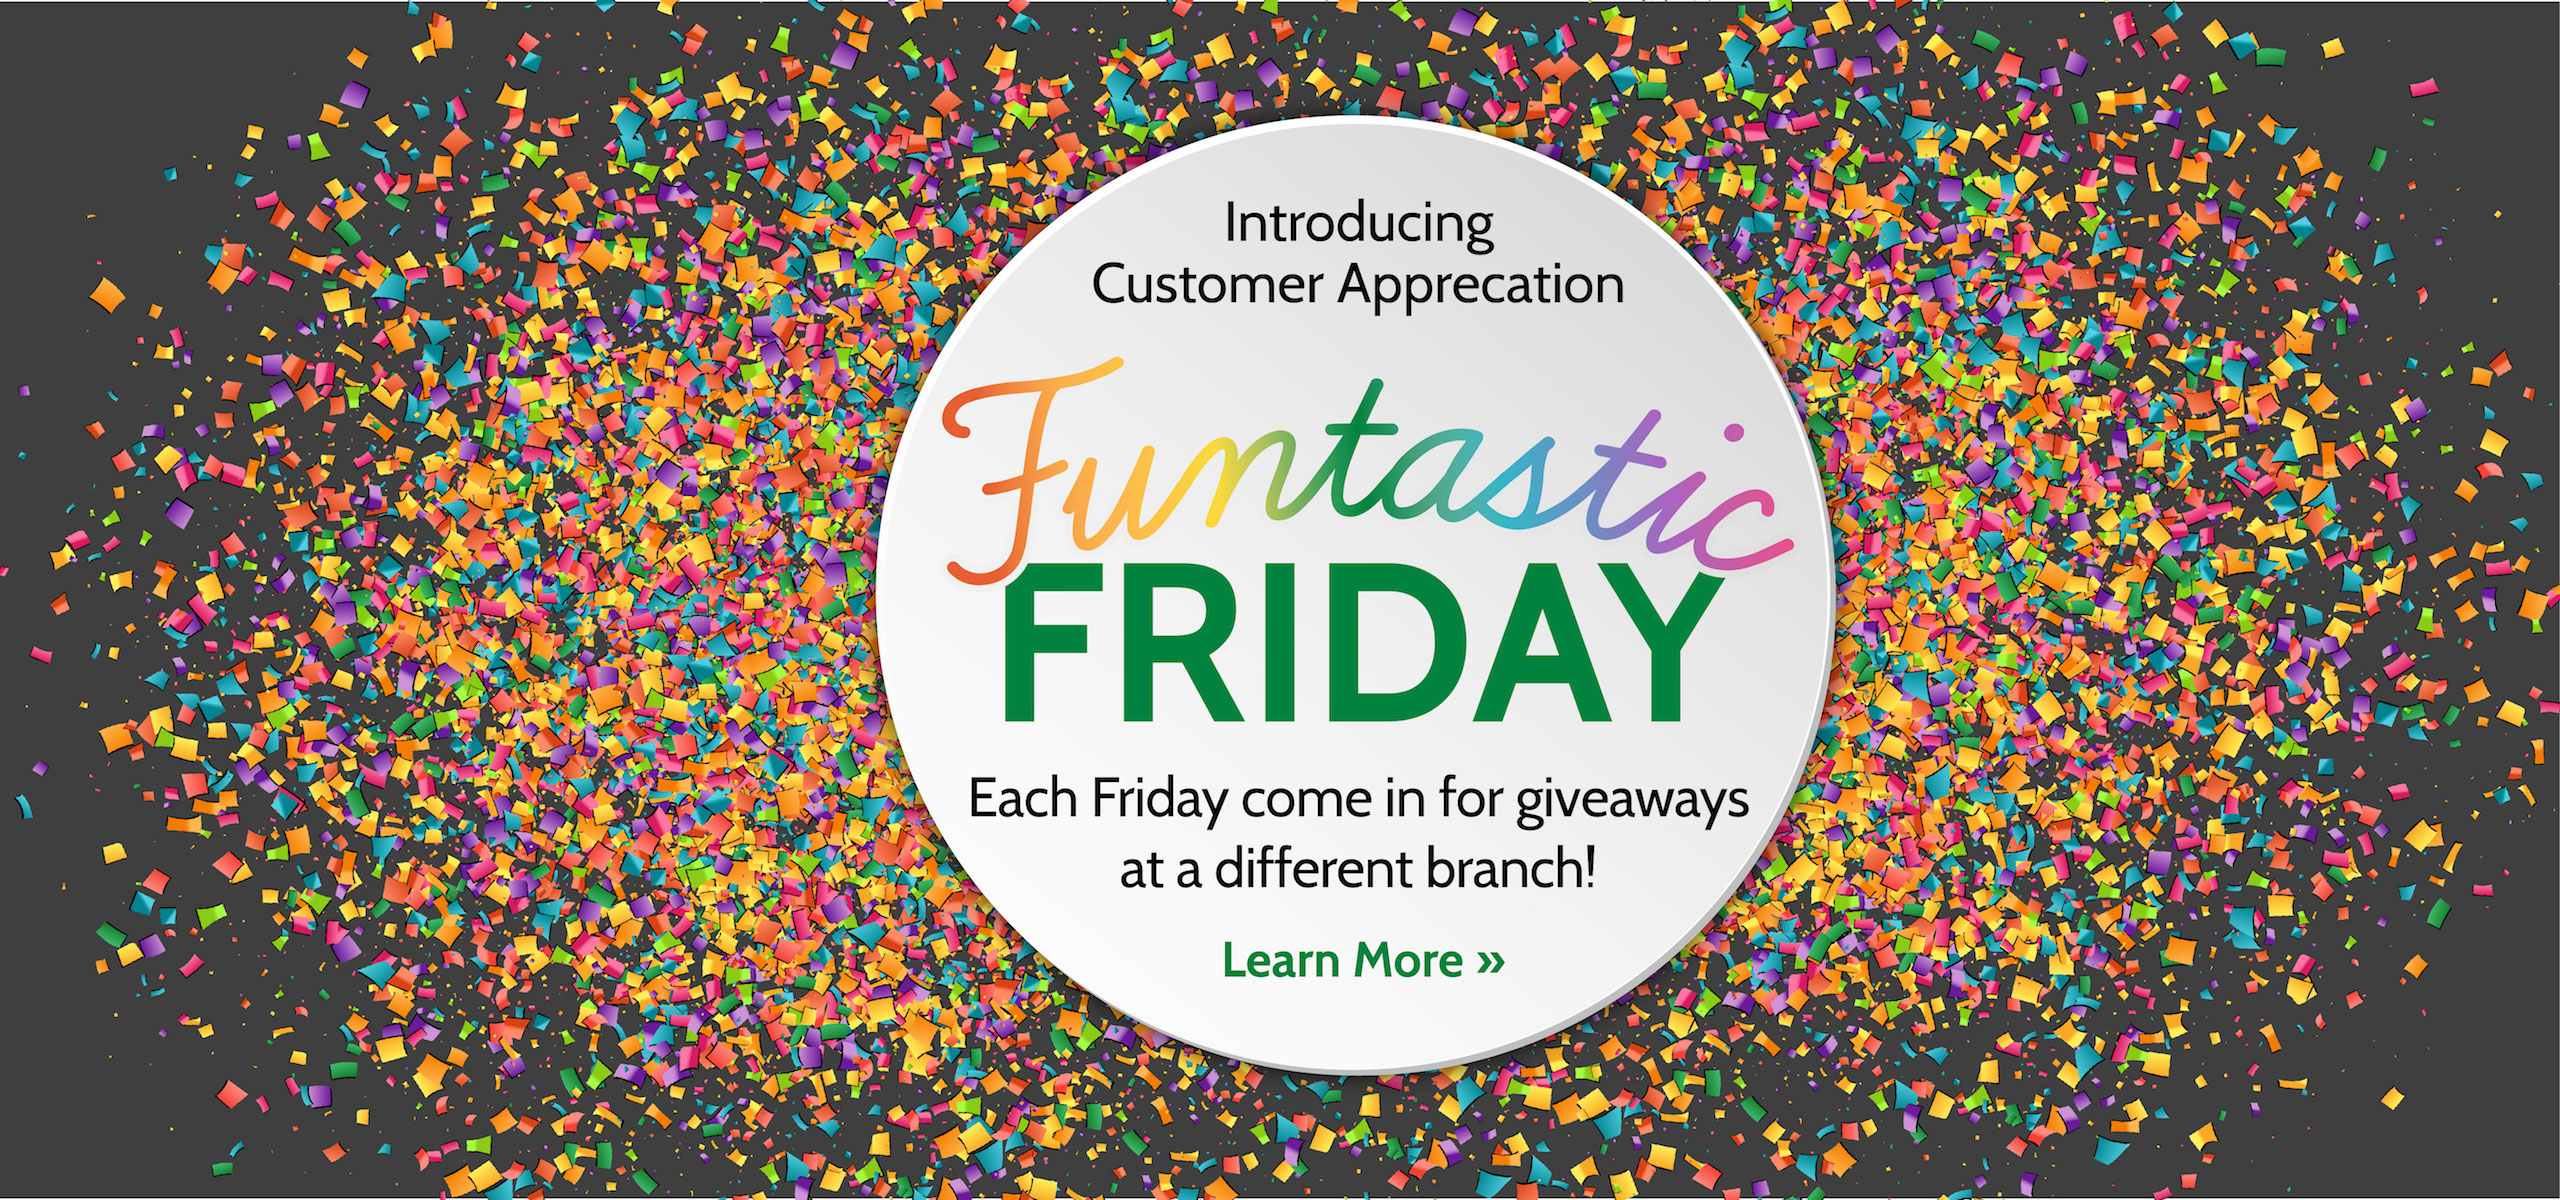 Introducing Customer Appreciation - Funtastic Fridy - Each Friday come in for giveaways at a different branch. Click here to Learn more.